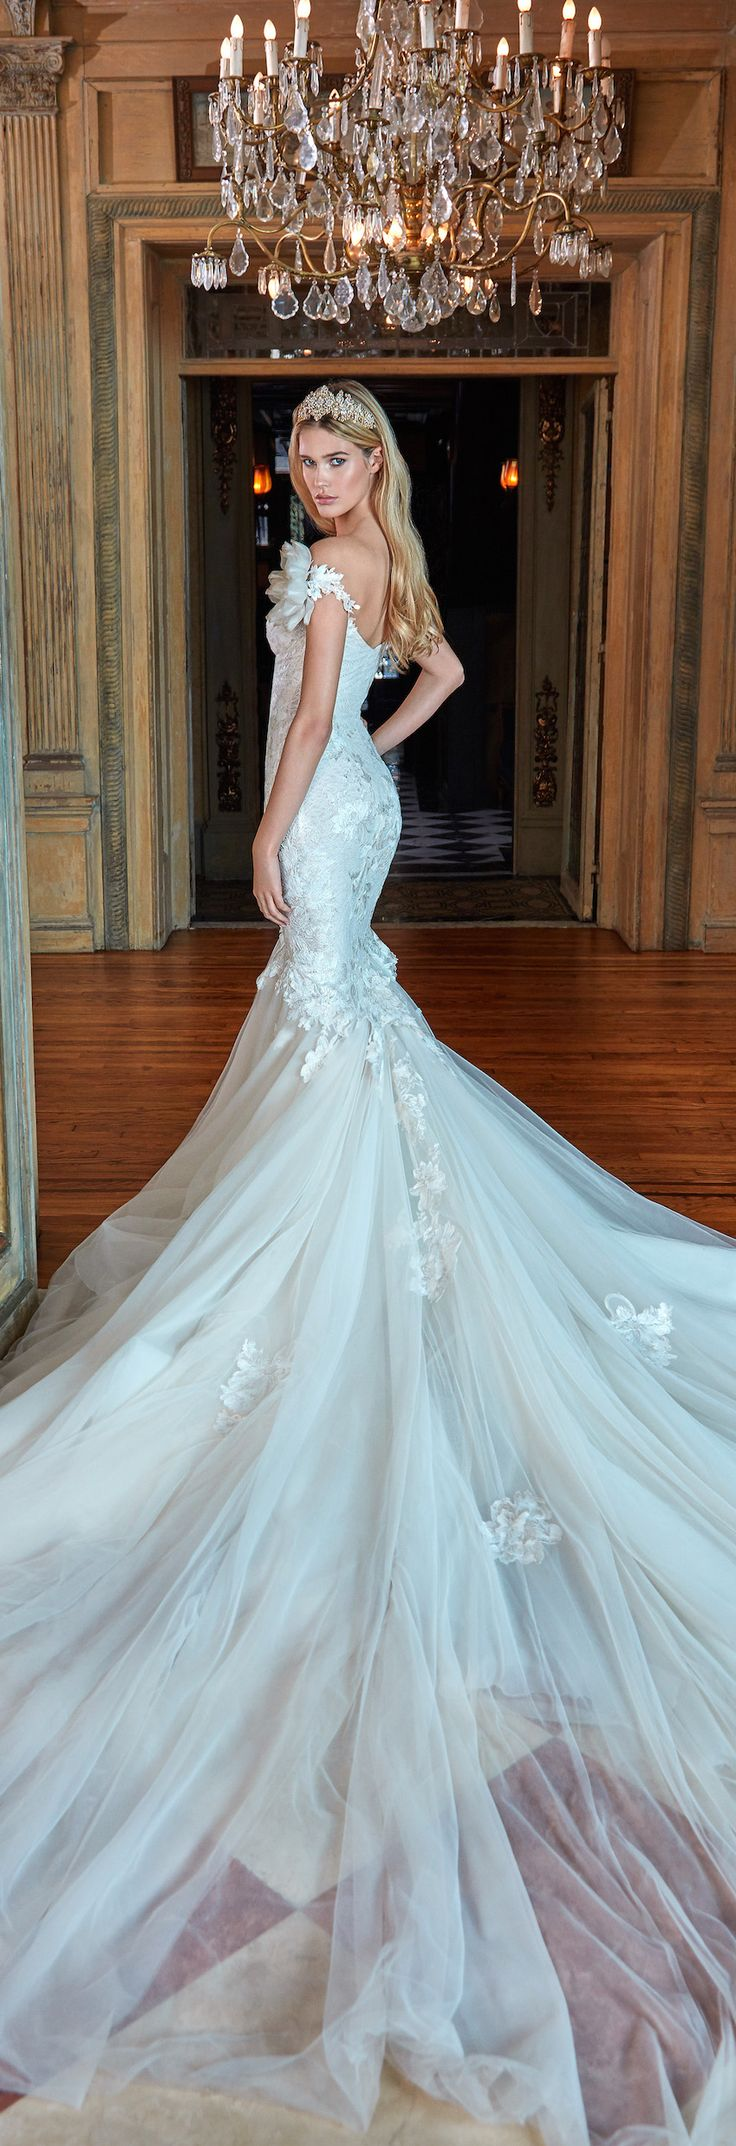 1412 best Wedding images on Pinterest | Wedding frocks, Homecoming ...